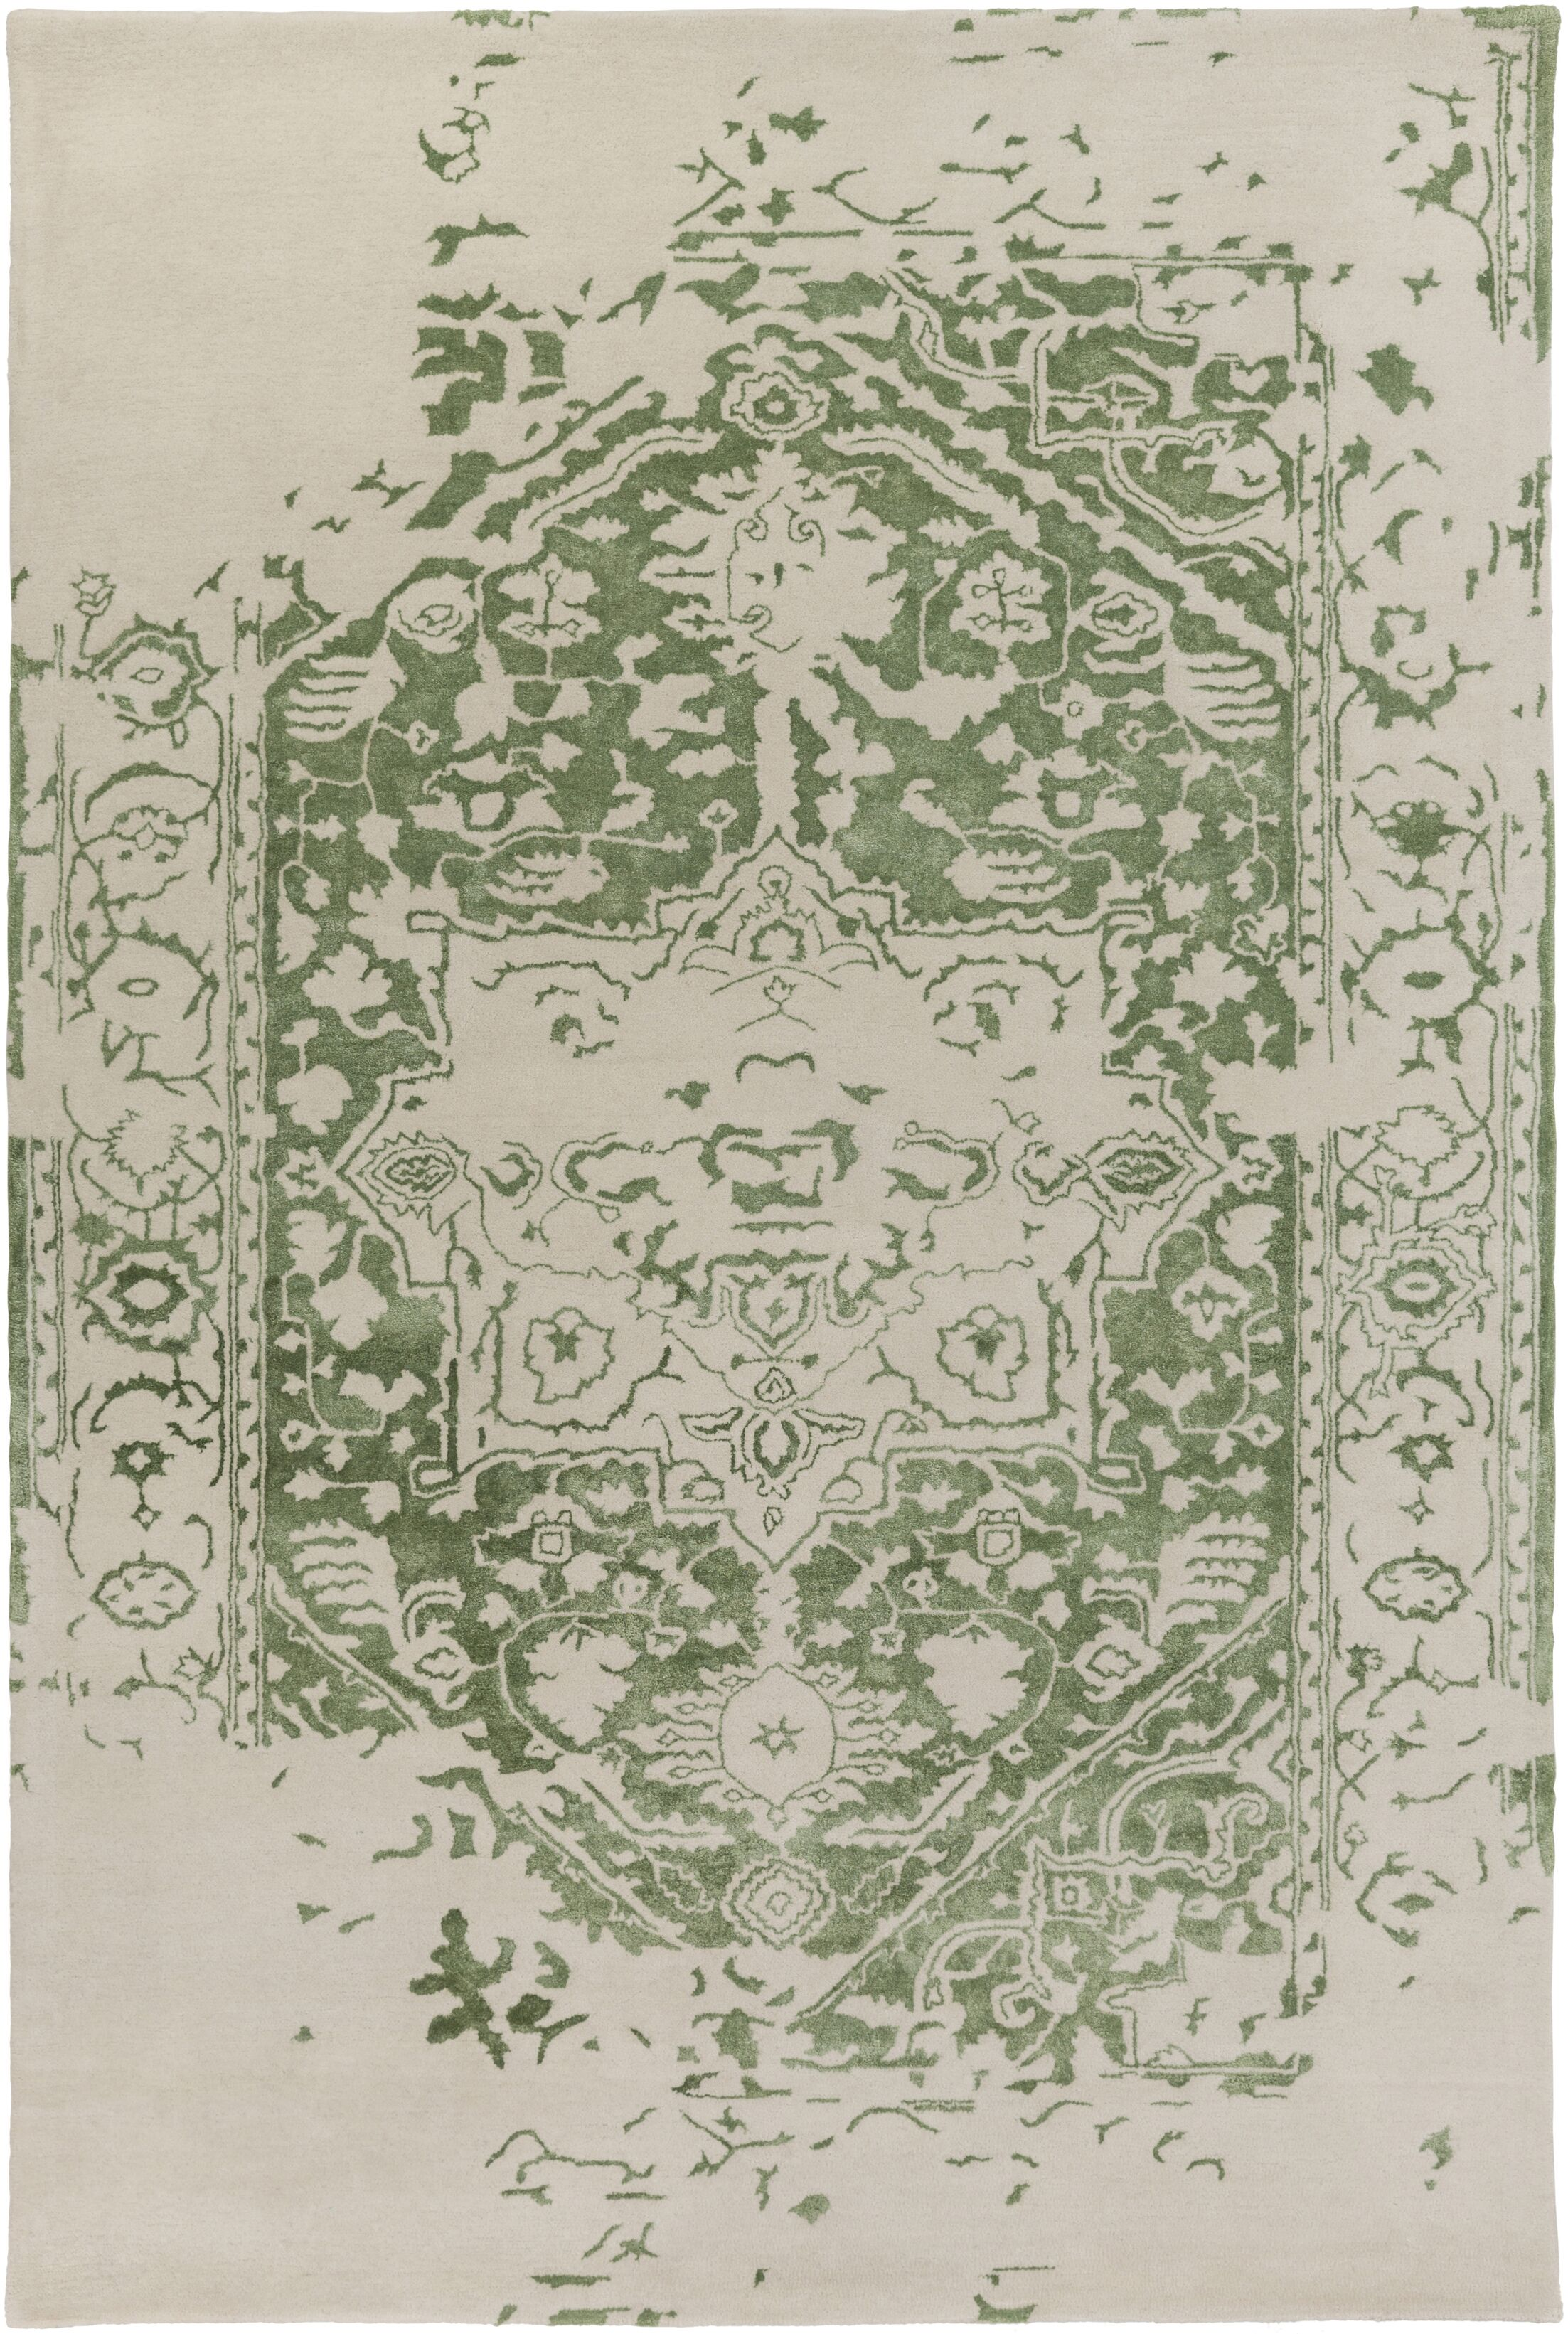 Angeles Hand Tufted Wool Green/Gray Area Rug Rug Size: 12' x 15'